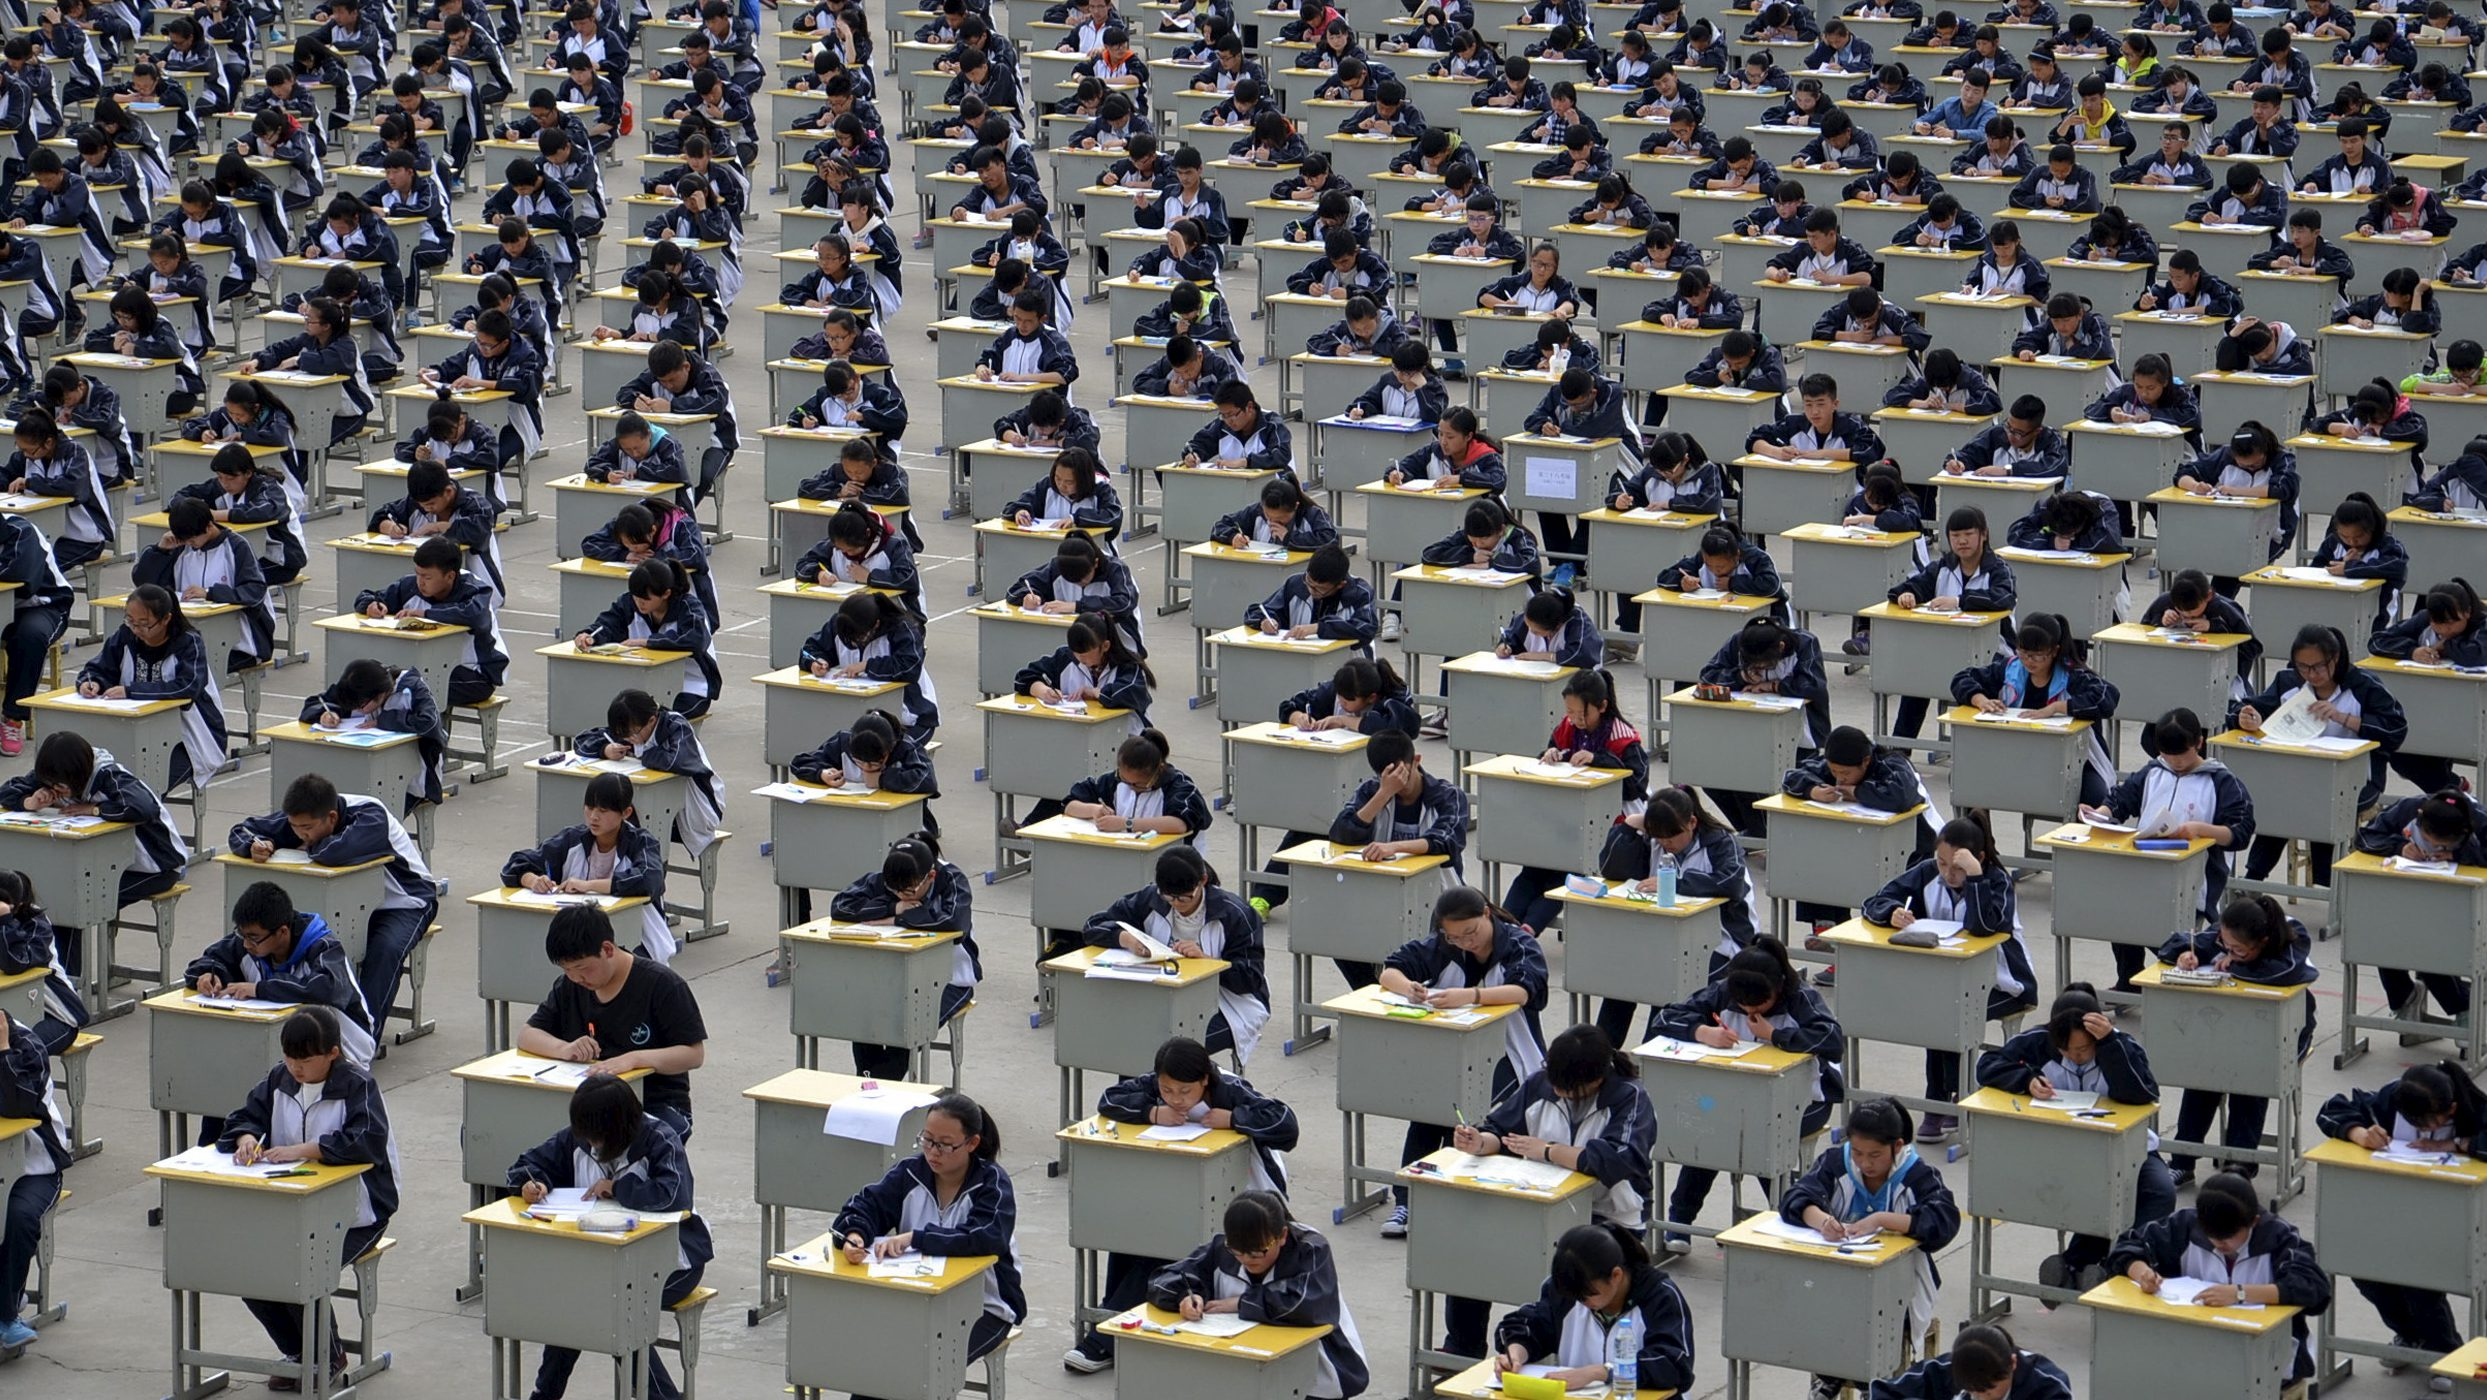 Students take an examination on an open-air playground at a high school in Yichuan, Shaanxi province April 11, 2015. More than 1,700 freshmen students took part in the exam on Saturday, which was the first attempt by the school to take it in open-air. The school said the reasons was due to the insufficient indoor space and also that it could be a test of the students' organizing capacity, local media reported. Picture taken April 11, 2015. REUTERS/Stringer      TPX IMAGES OF THE DAY      - RTR4WYSJ